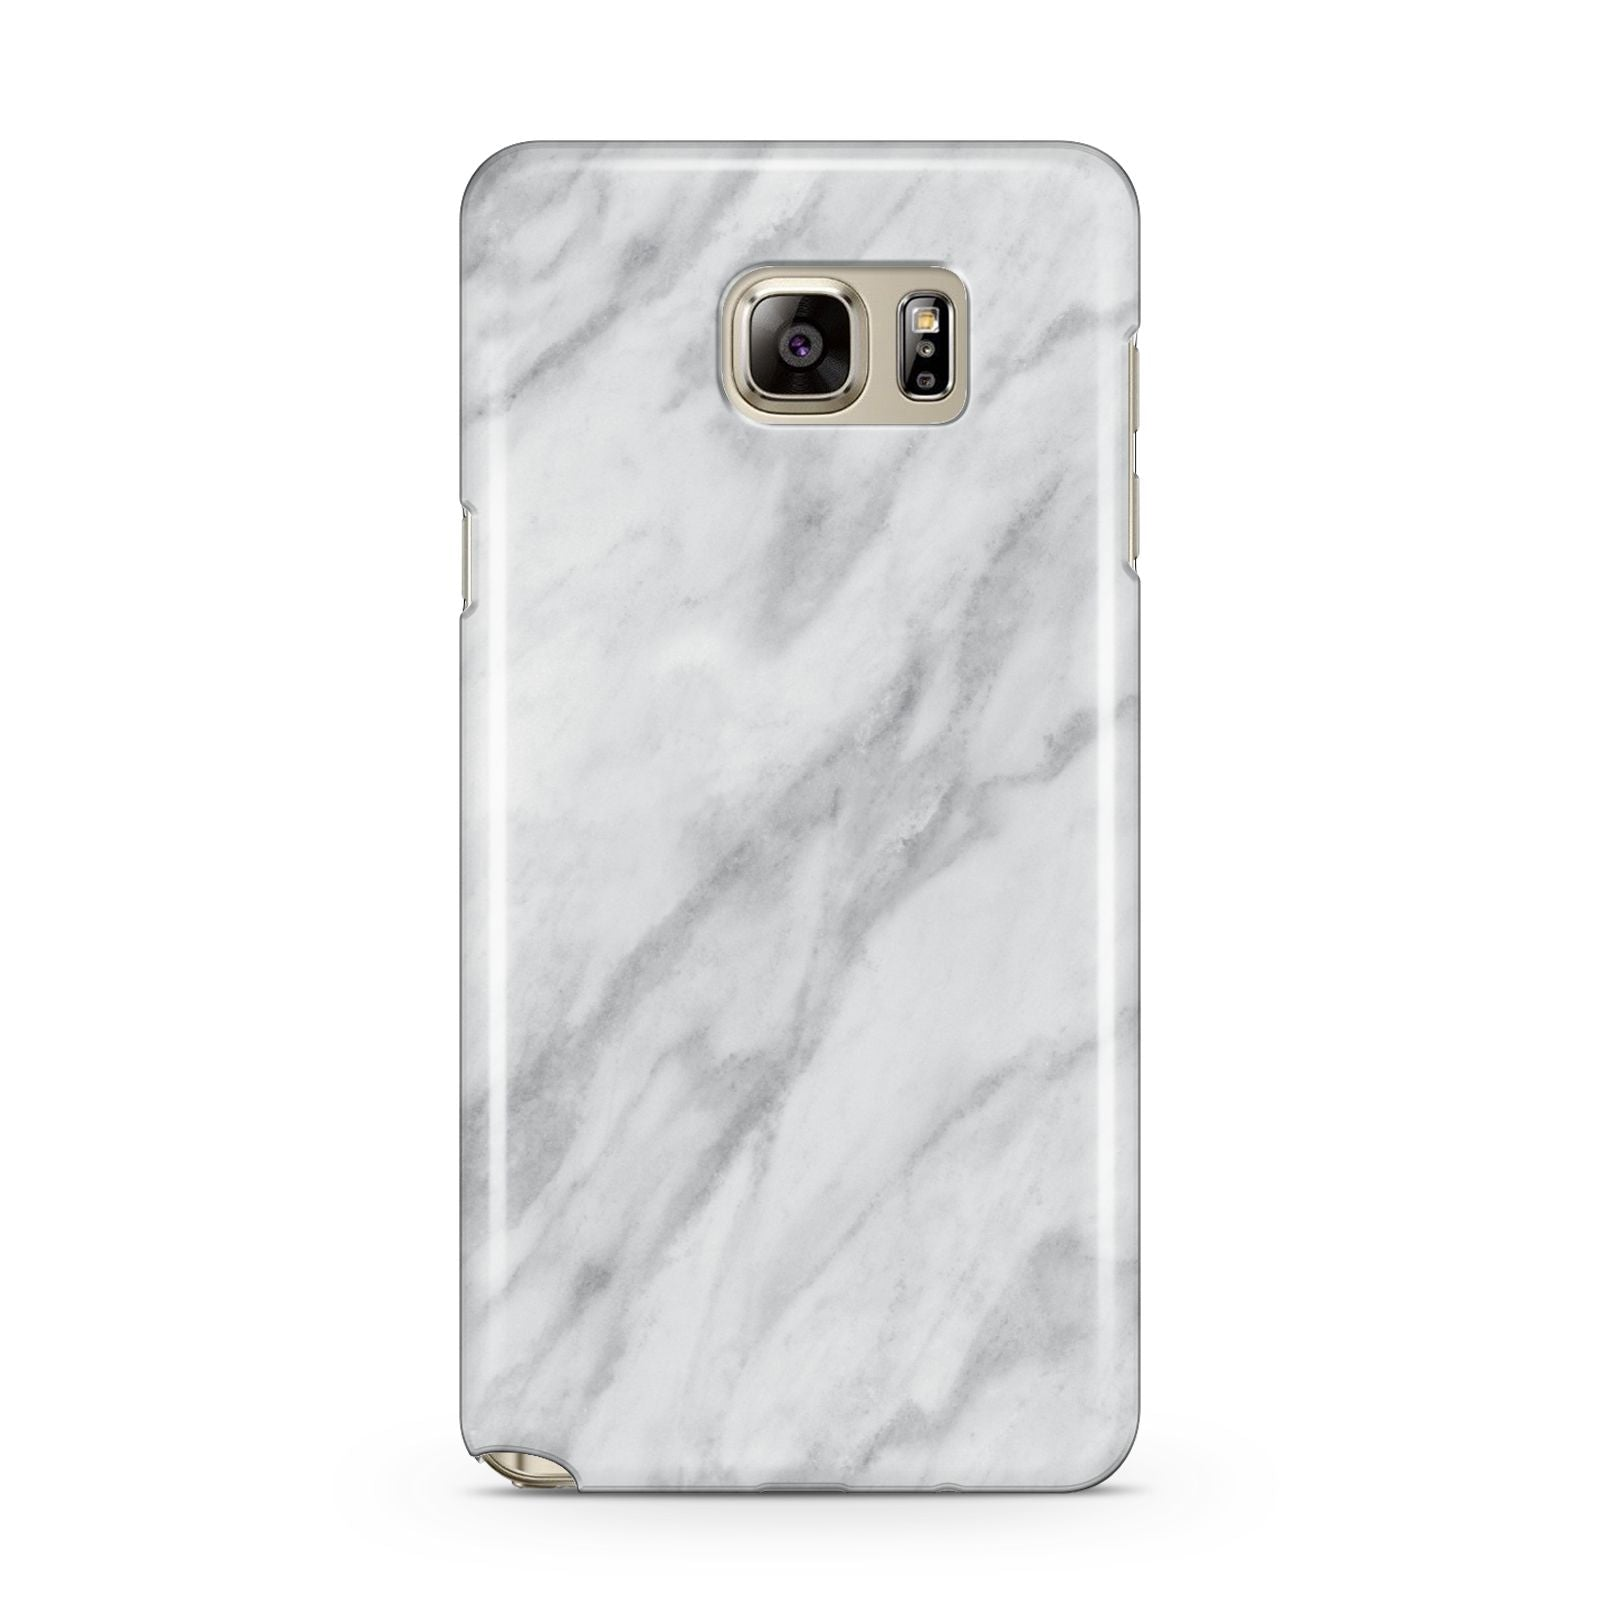 Faux Marble Effect Italian Samsung Galaxy Note 5 Case